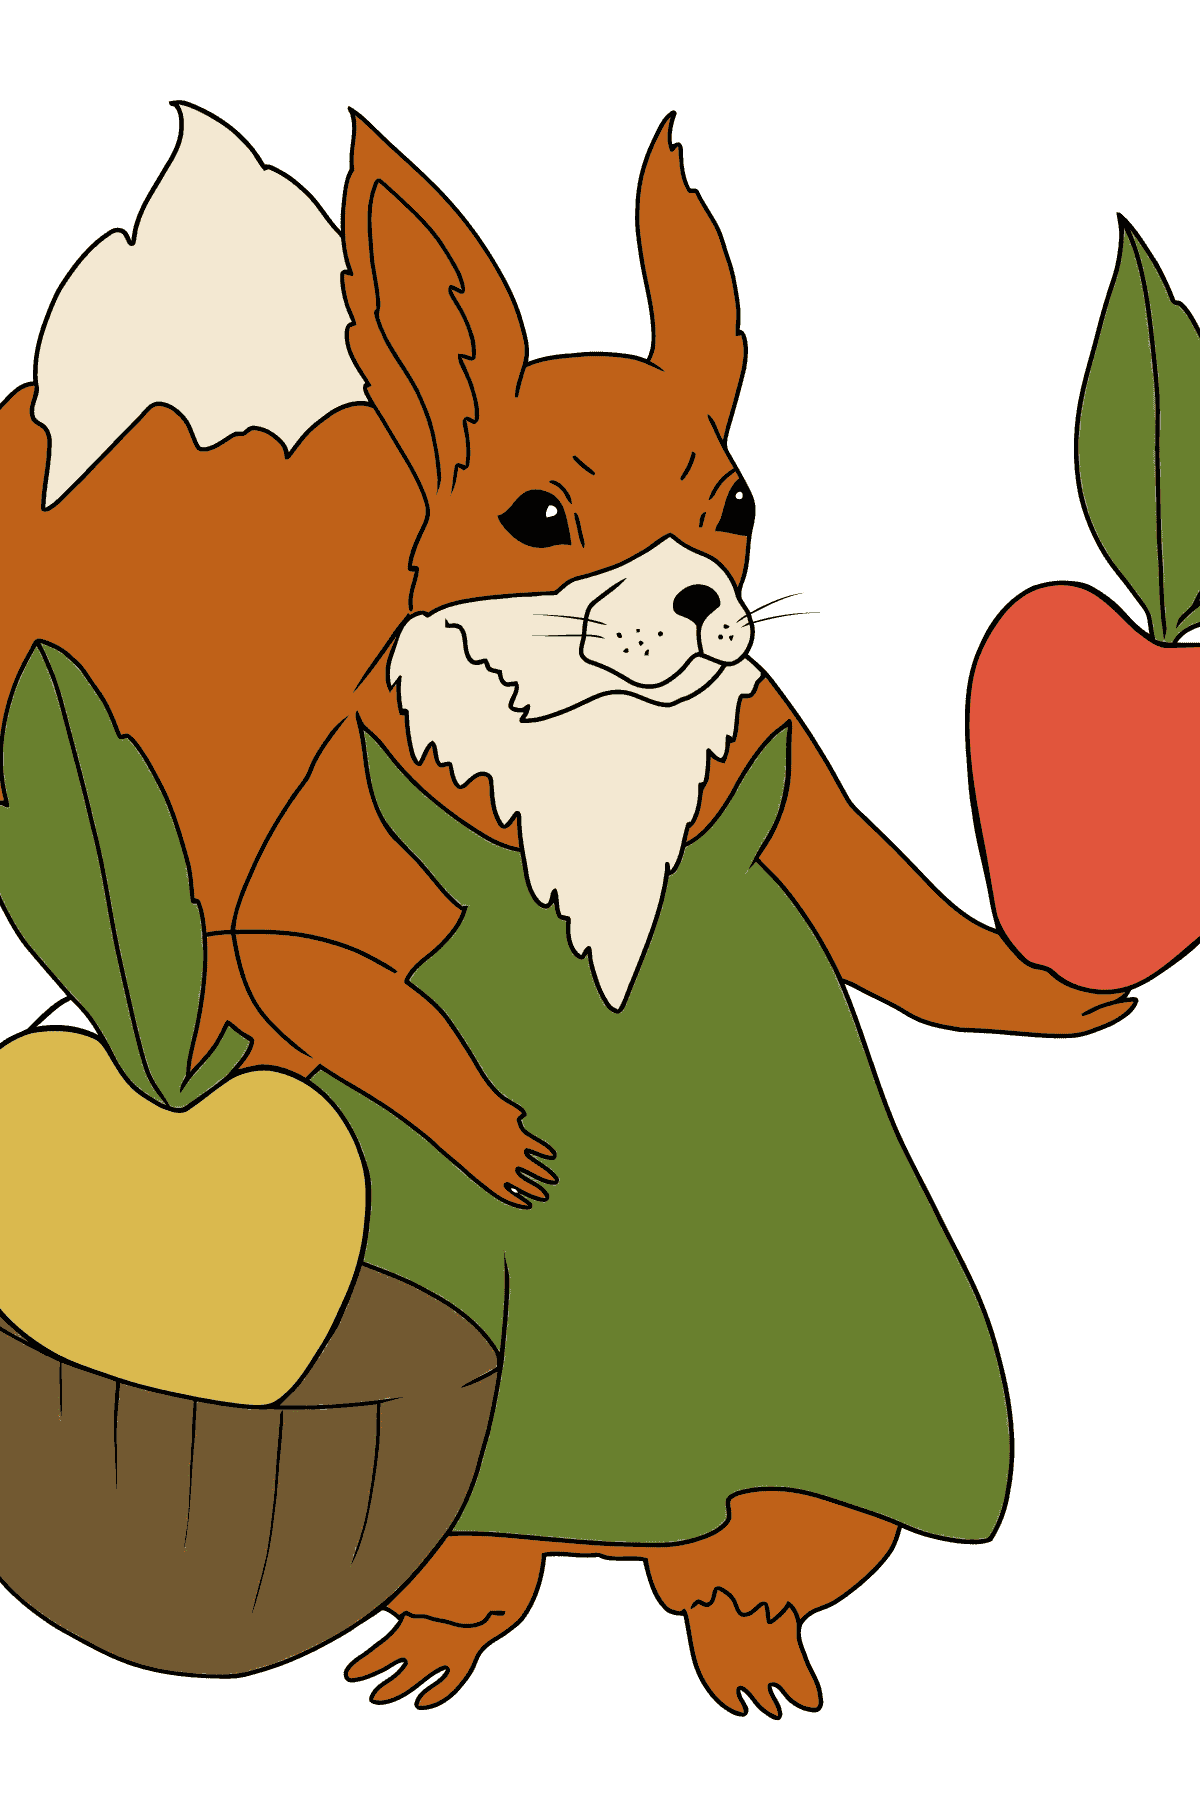 Summer Coloring Page - Squirrels are Preparing Apples for Winter for Kids